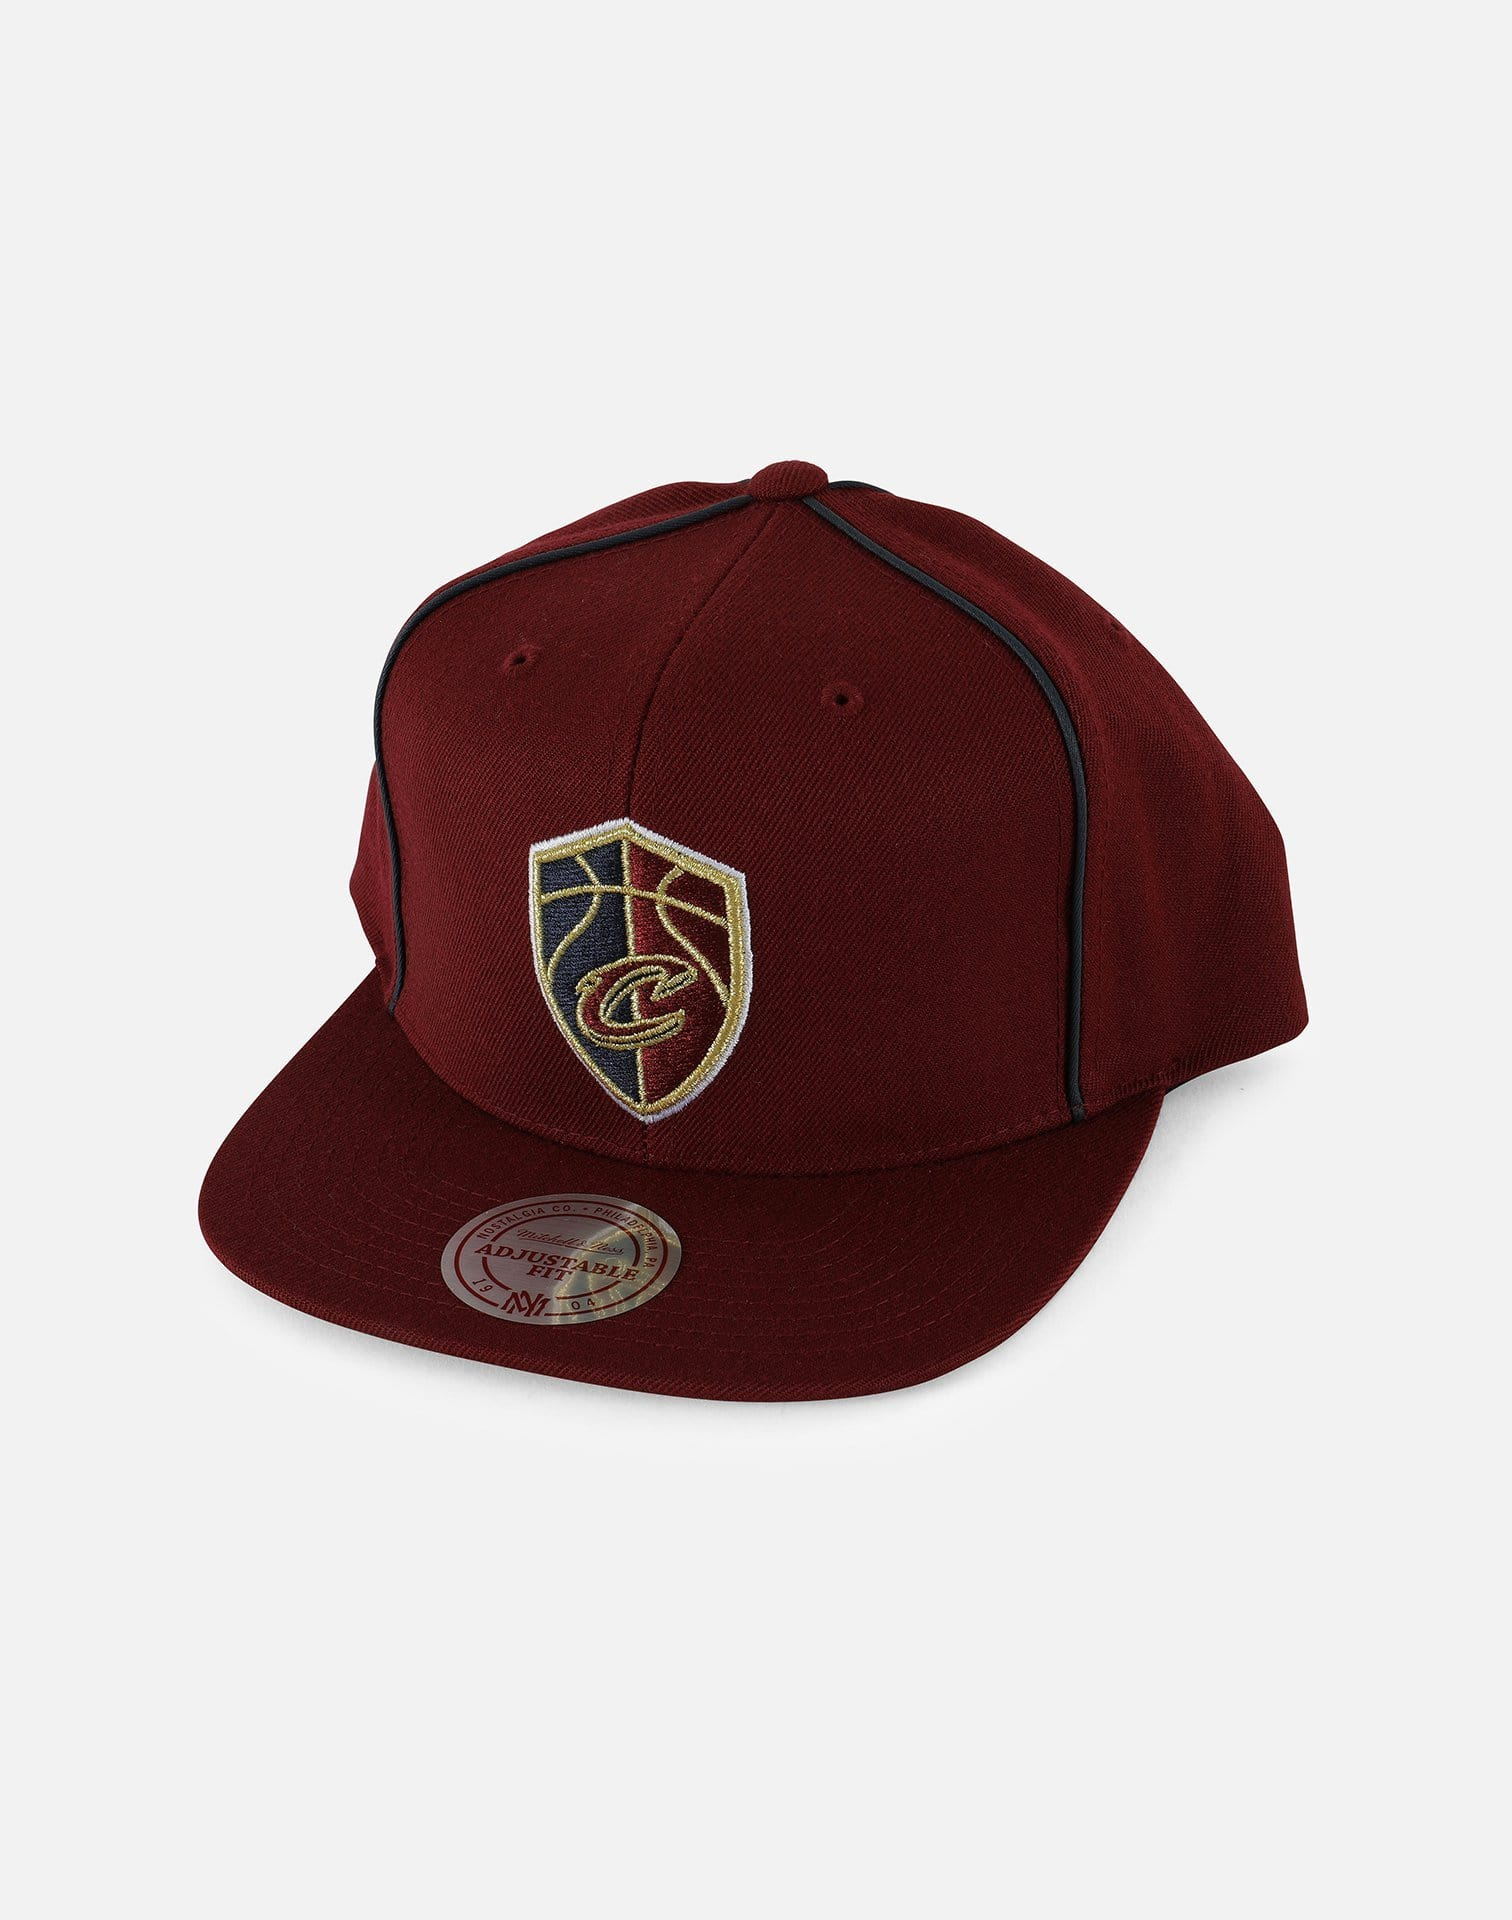 New Era NBA Cleveland Cavaliers Basic Link Snapback Hat